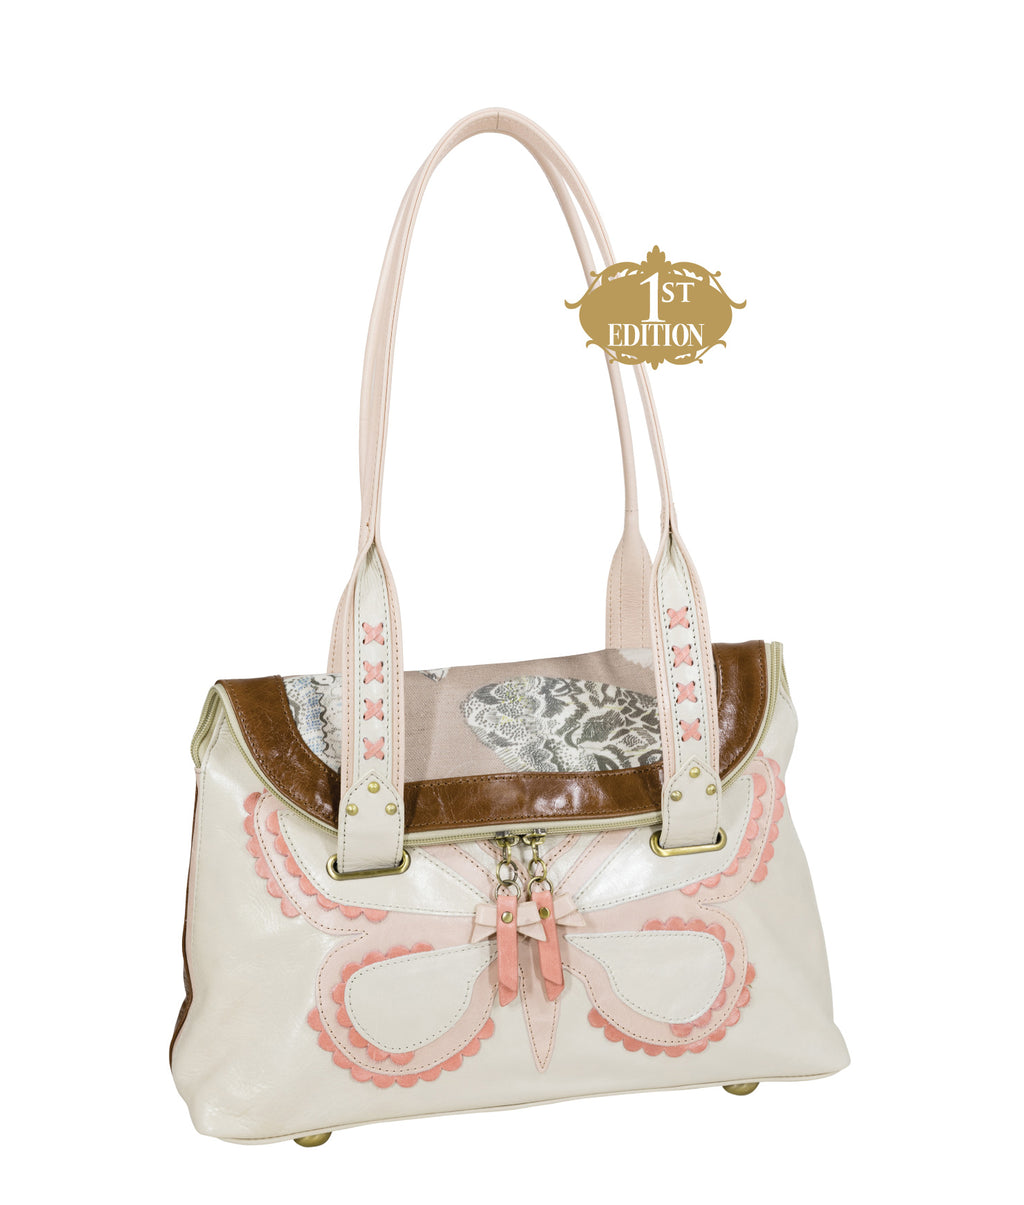 UNA Shoulder Bag - Tea Party - 1st Edition